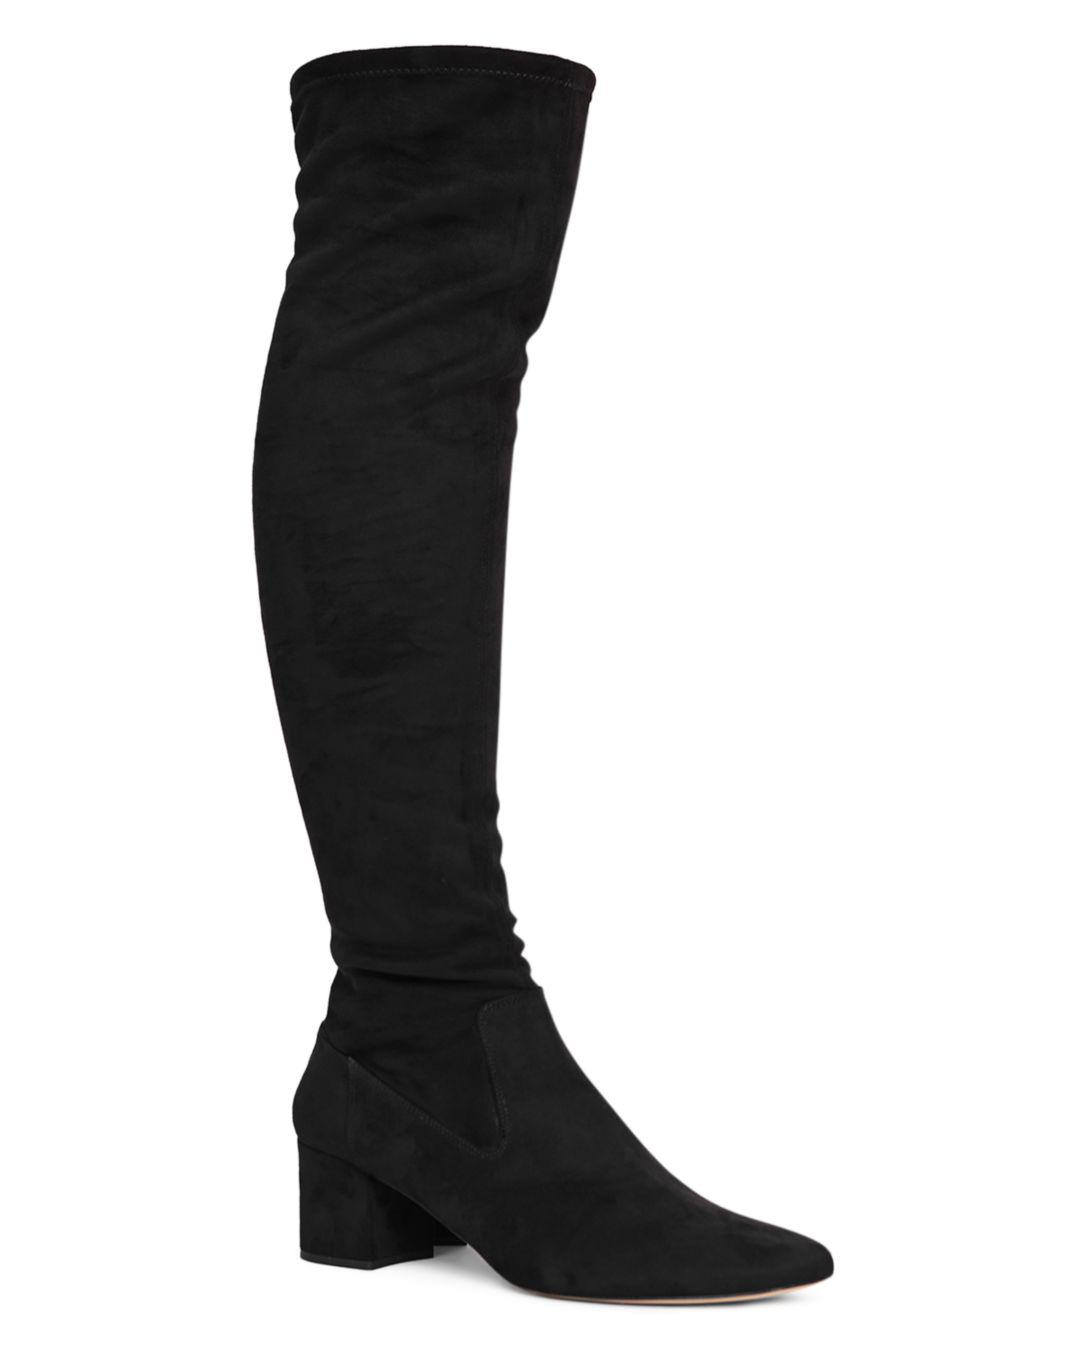 a7b95f0cd417 Lyst - Reiss Women s Margi Over-the-knee Suede Boots in Black